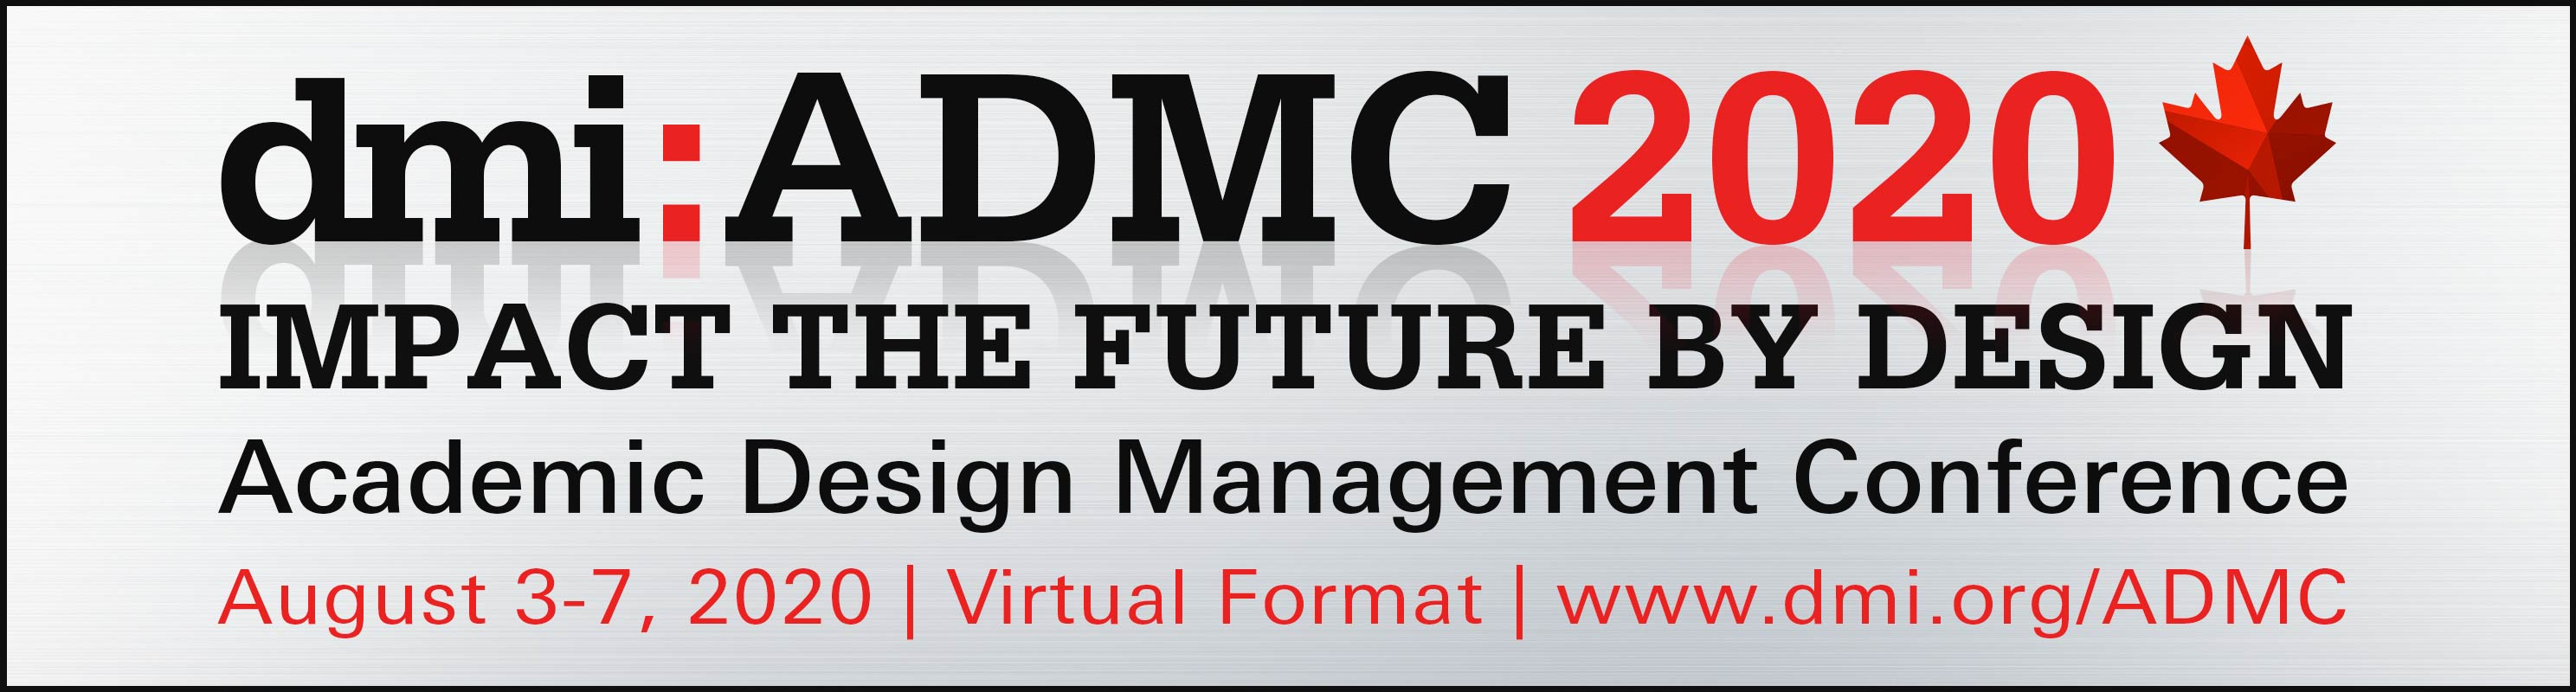 dmi:Academic Design Management Conference: Impact the Future by Design